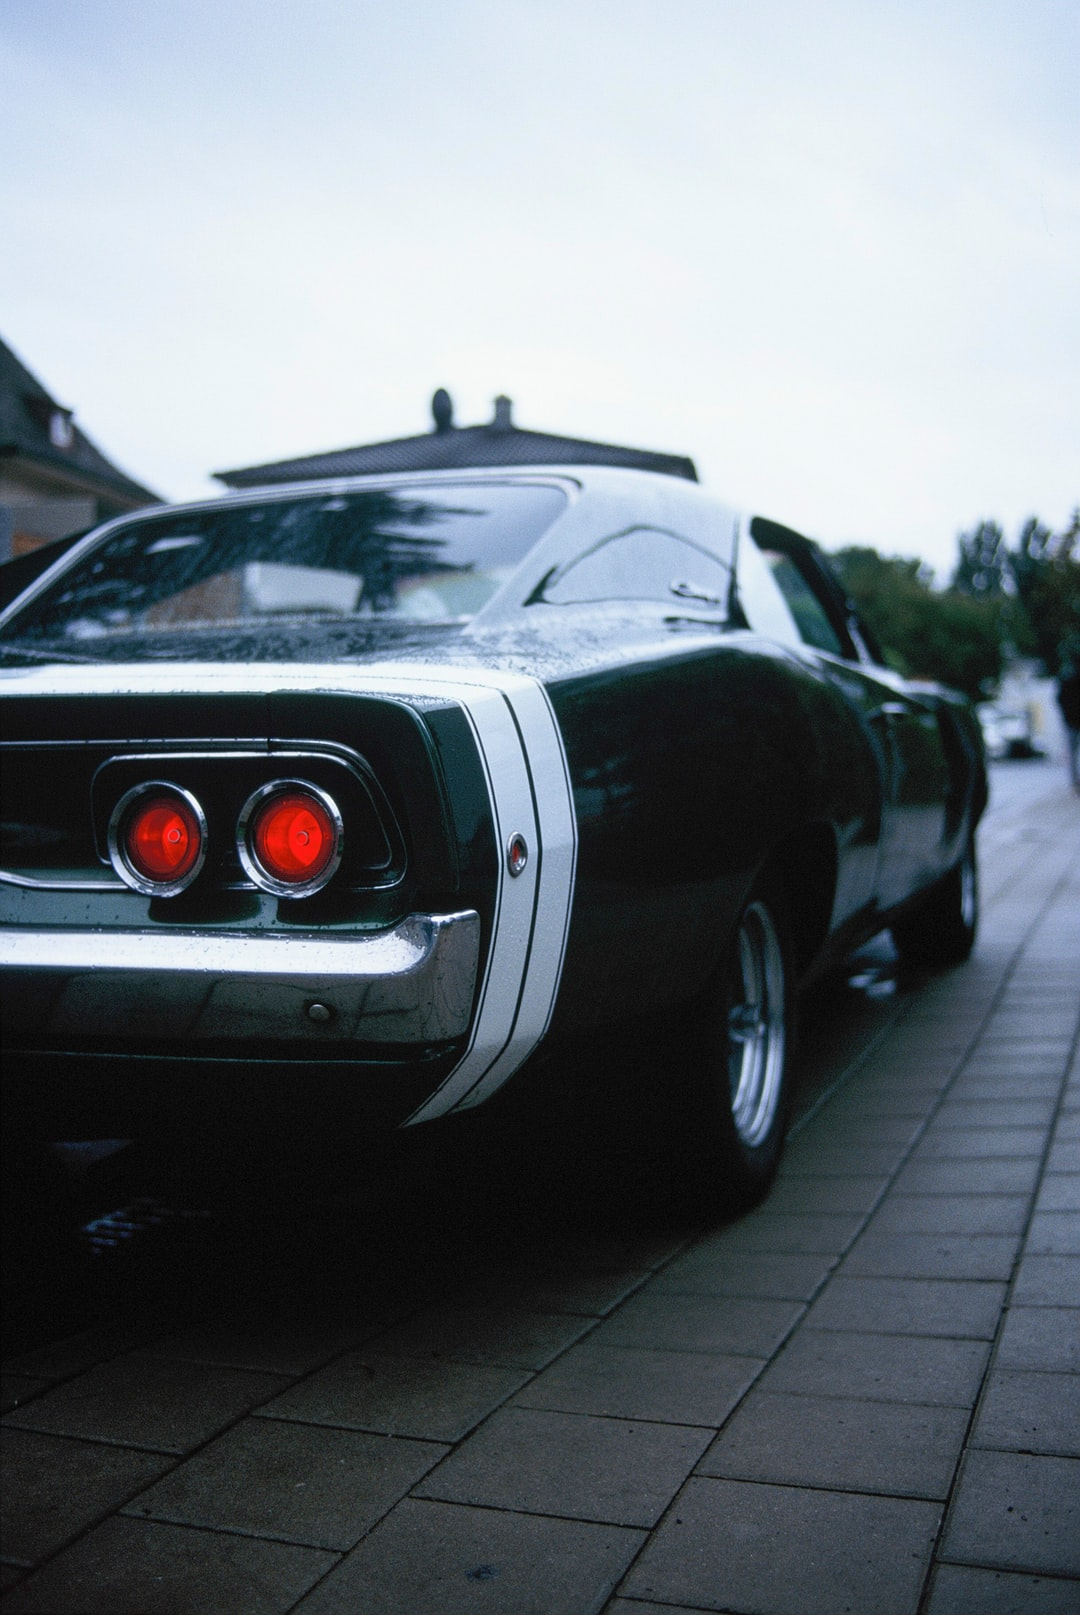 Vintage US muscle car Dodge Charger (Year: 1968, V8, 375 PS). Made with Leica R7 (Year: 1994) and Leica Summicron-R 2.0 35mm (Year: 1978). Analog scan via nimmfilm.de: Fuji Frontier SP-3000. Film reel: Kodak Ektarchrome E100